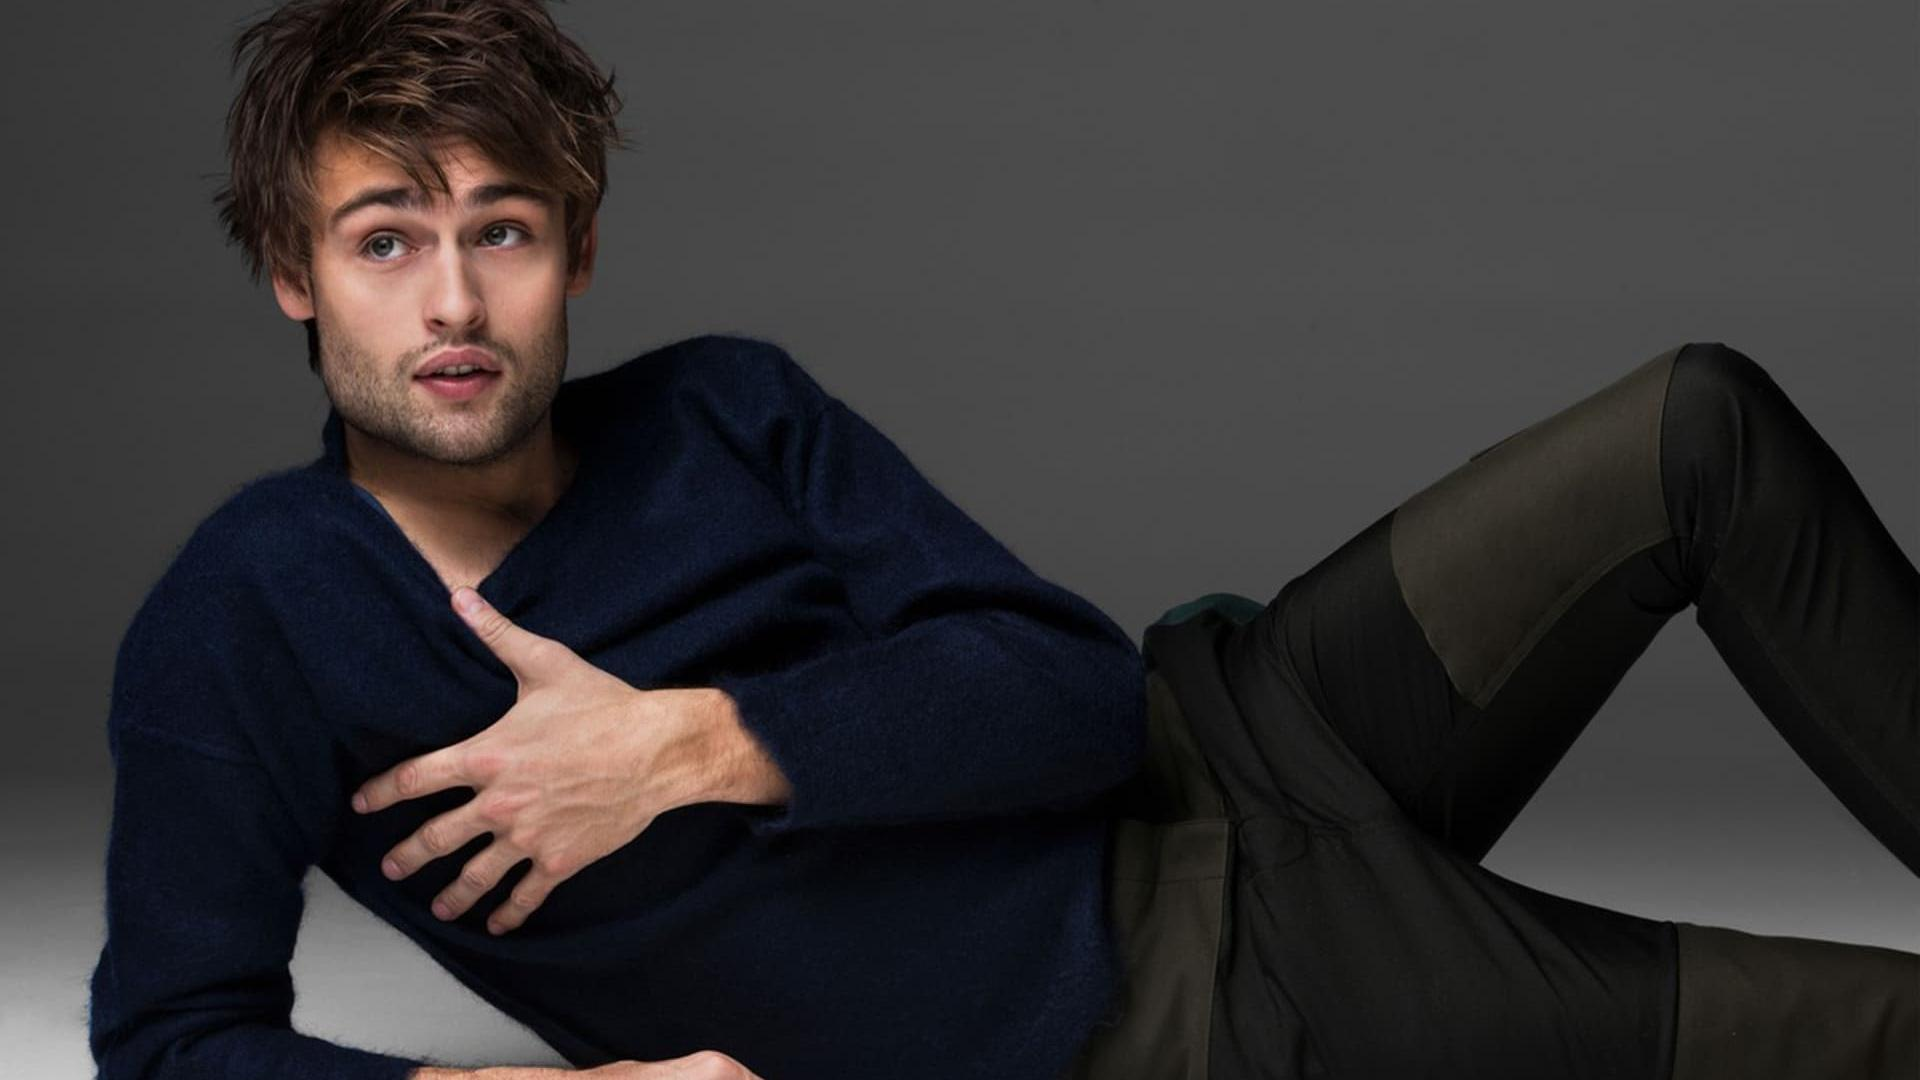 1920x1080 - Douglas Booth Wallpapers 29